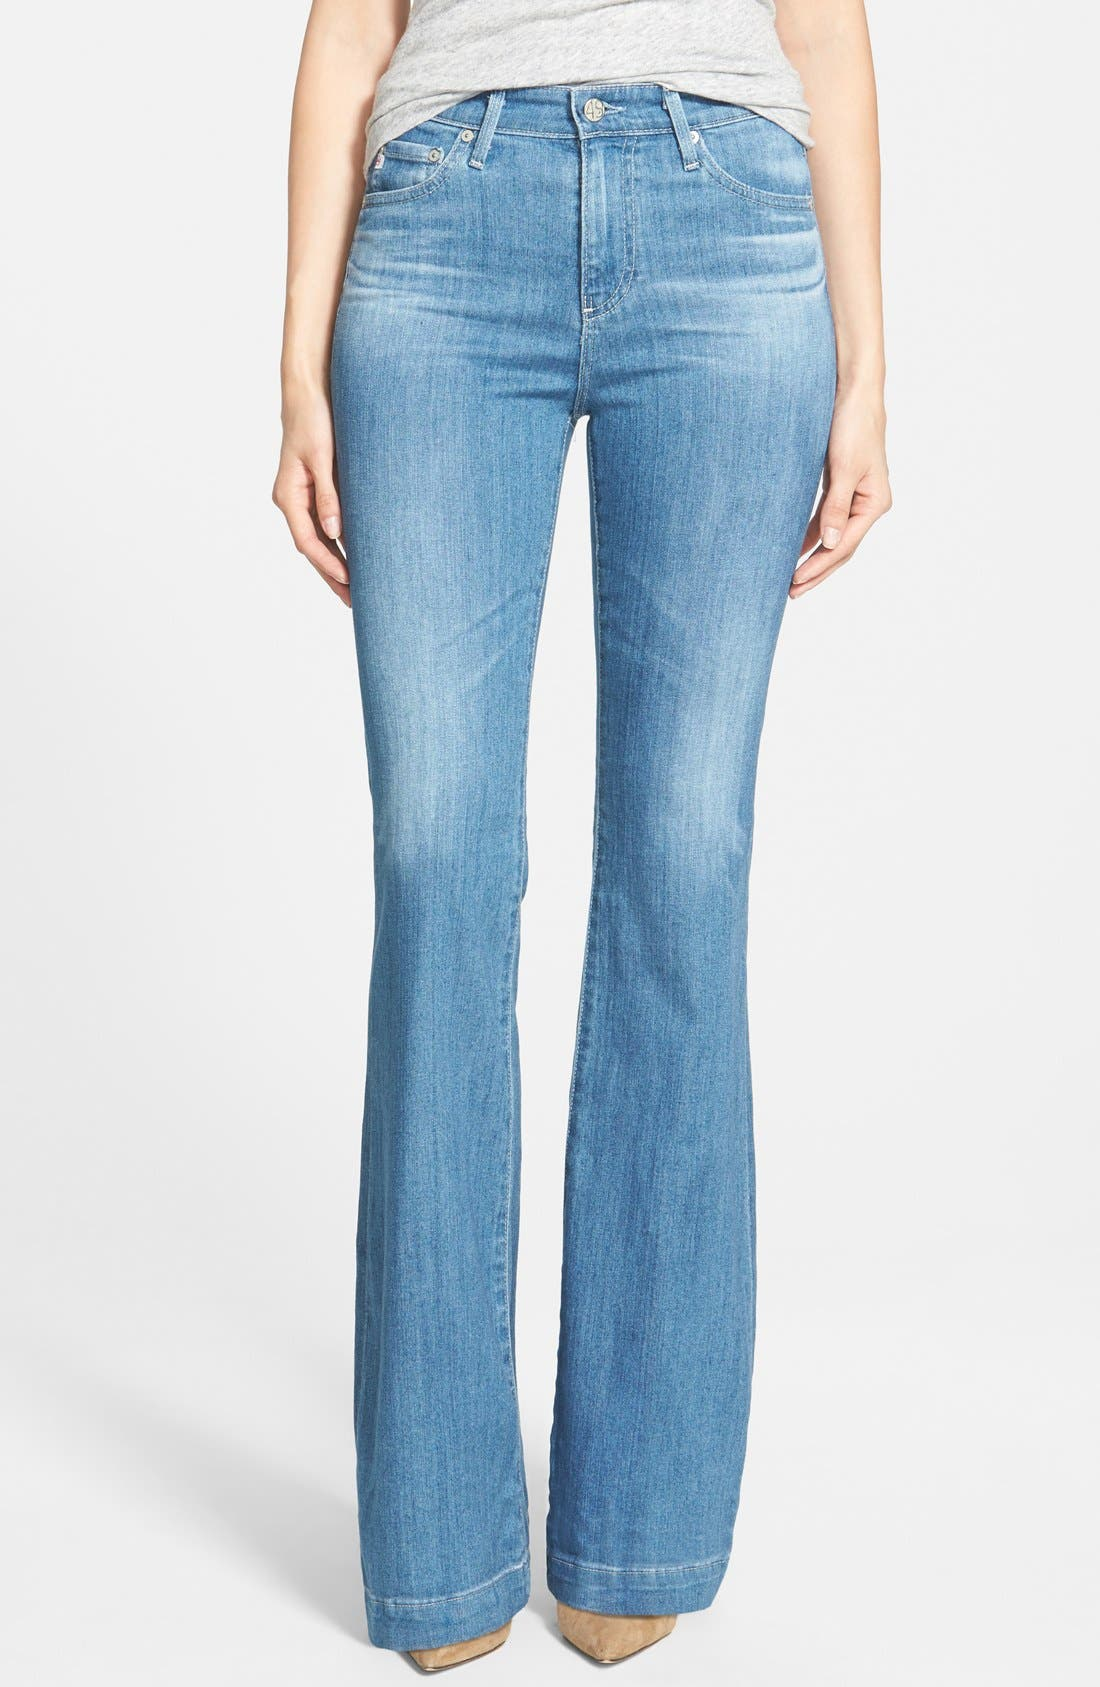 Alternate Image 1 Selected - AG 'Janis' High Rise Flare Jeans (25 Years Classic)